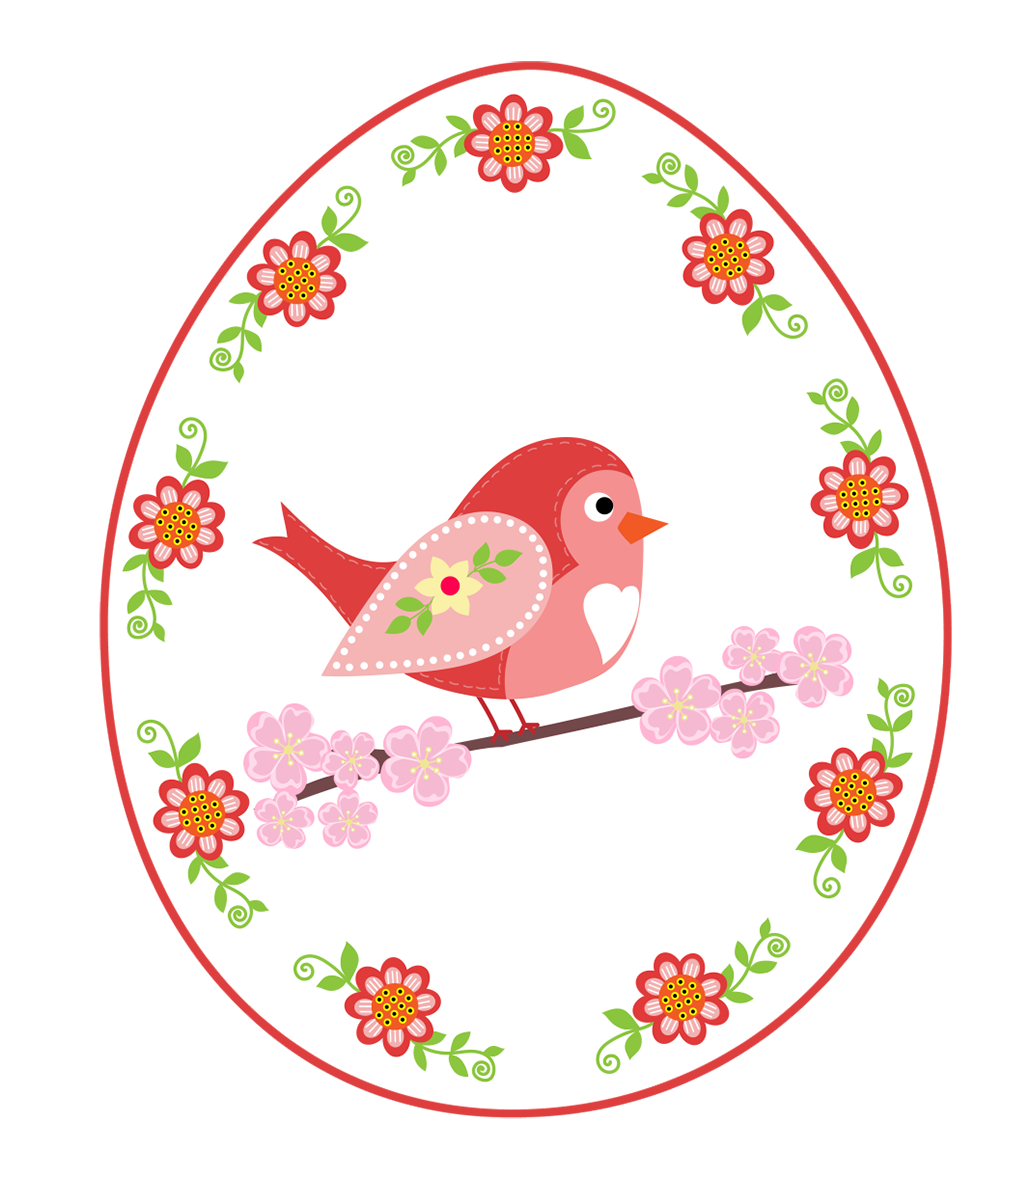 bird and flowers in egg shape